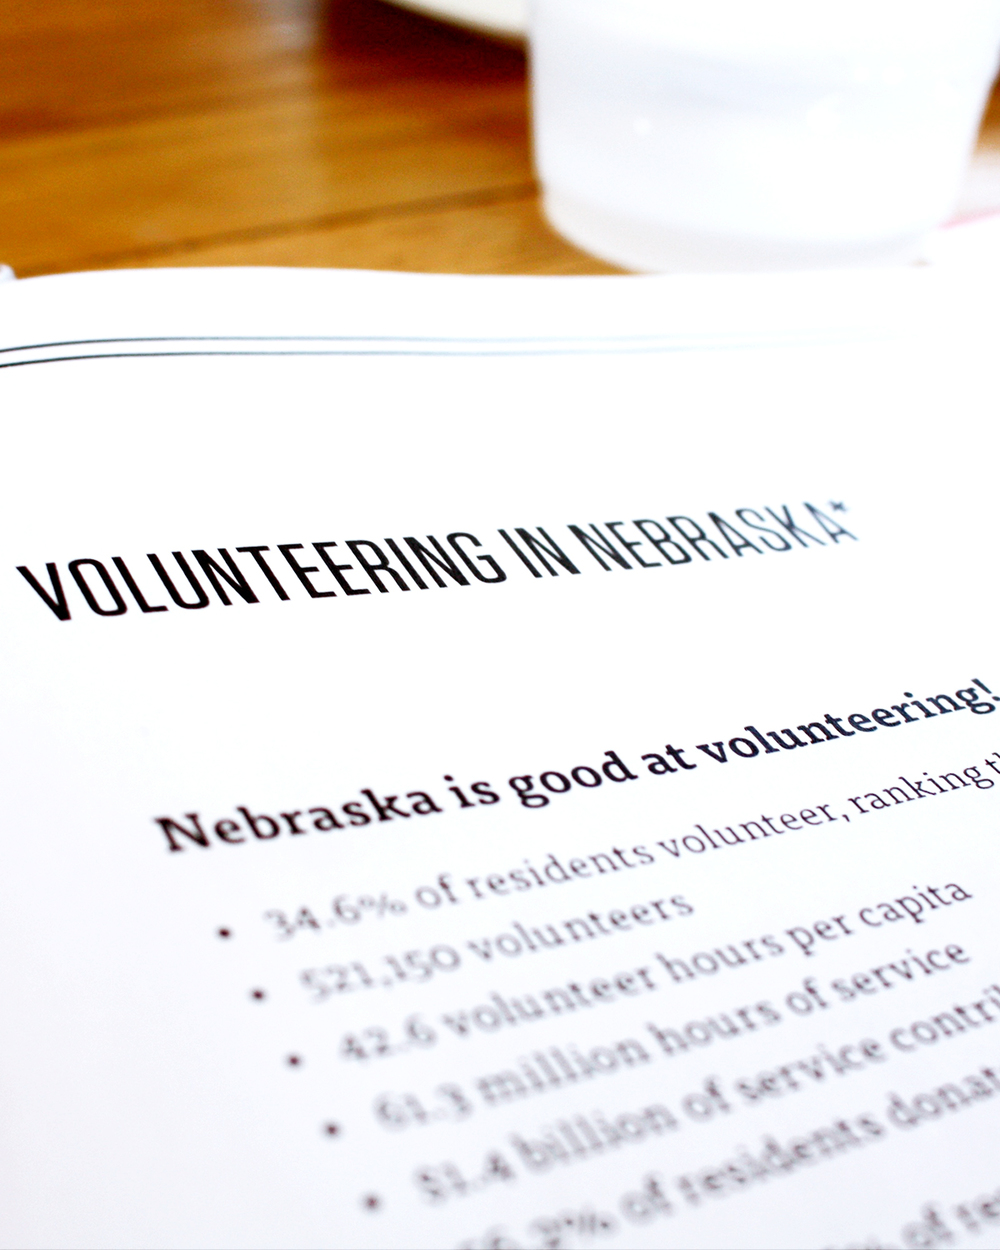 Nebraska ranks 7th in the nation when it comes to volunteering.